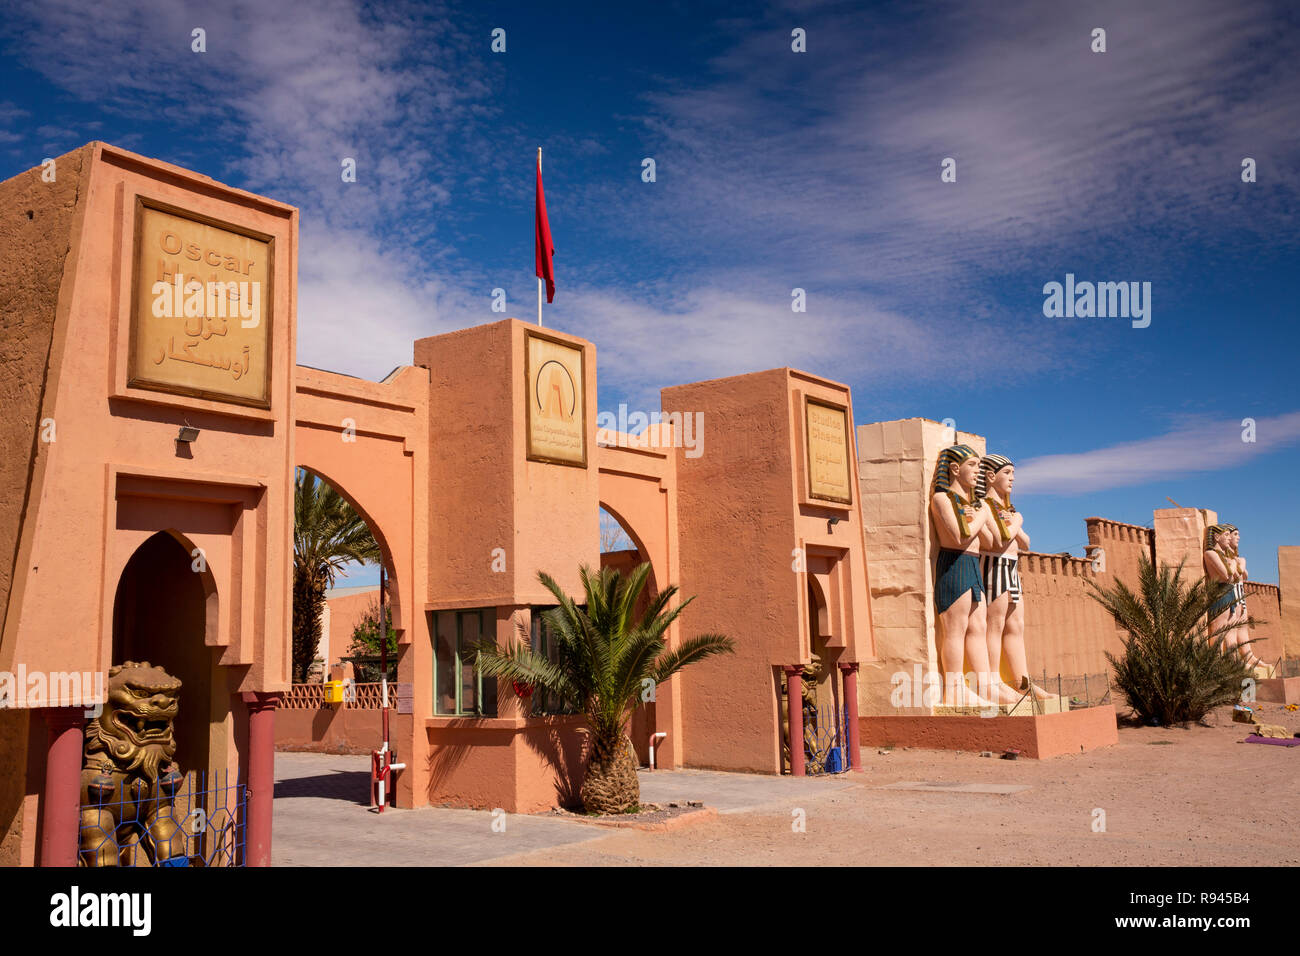 morocco ouarzazate atlas corporation film studio oscar hotel and studios cinema egyptian themed entrance R945B4